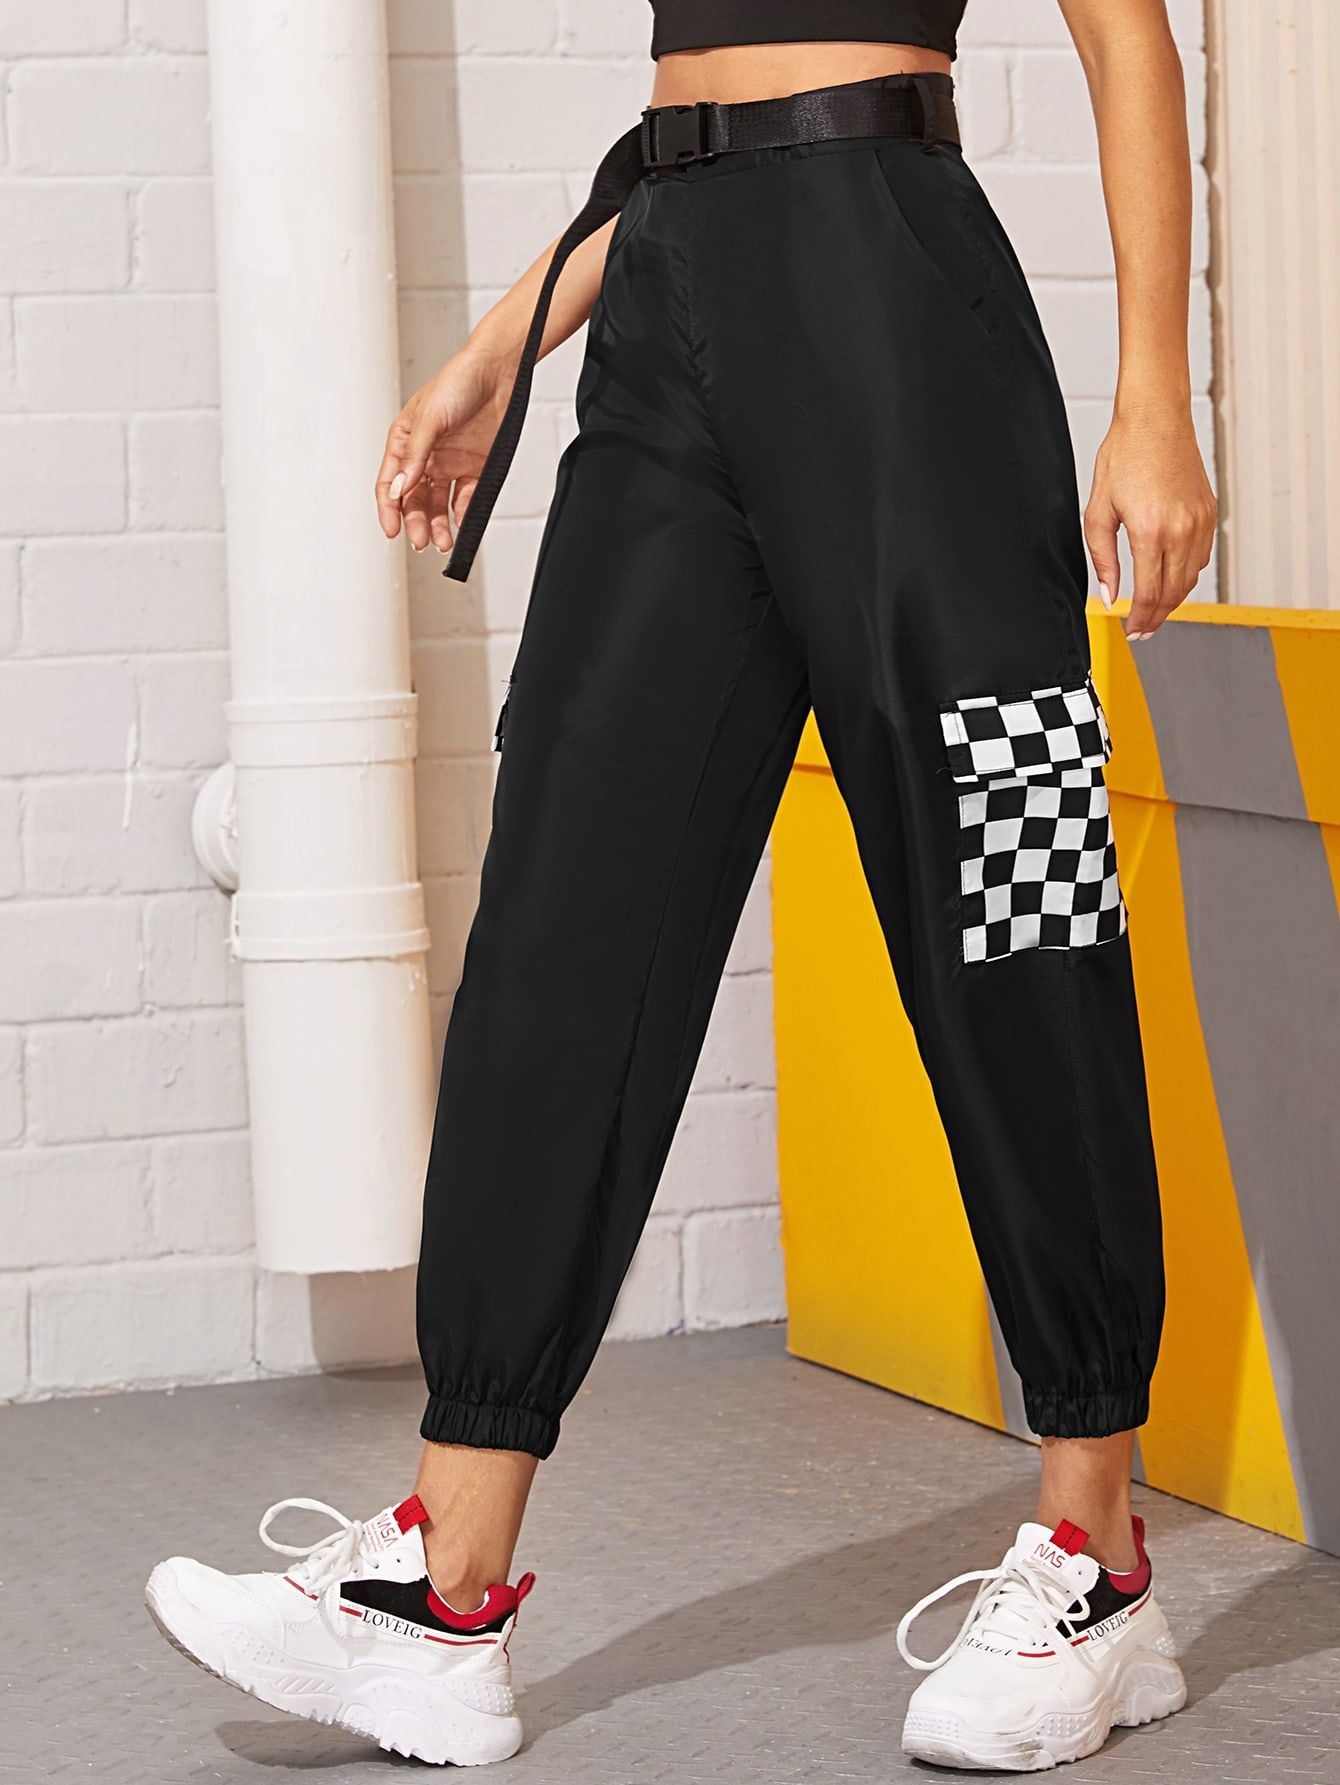 Ad Contrast Pocket Belted Cargo Pants Tags Casual Black Plaid Belted Pocket Cropped Cargo Pants Spring Summer Fall Cargo Pants Bottom Clothes Pants